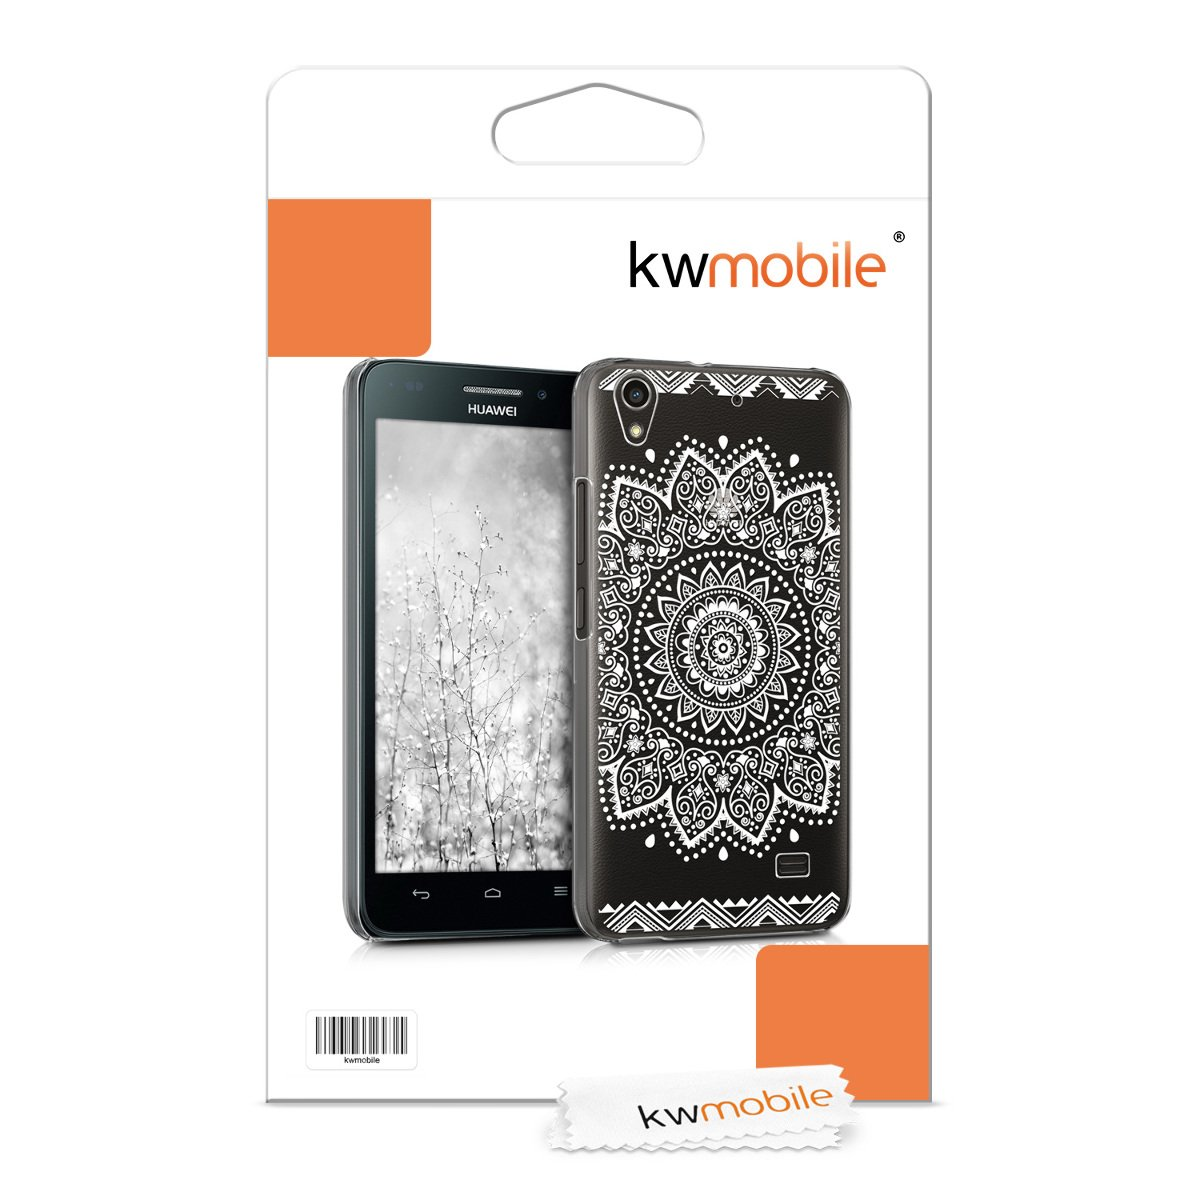 kwmobile Crystal Case for Huawei Ascend G620s - Hard Durable Transparent Protective Cover - White/Transparent